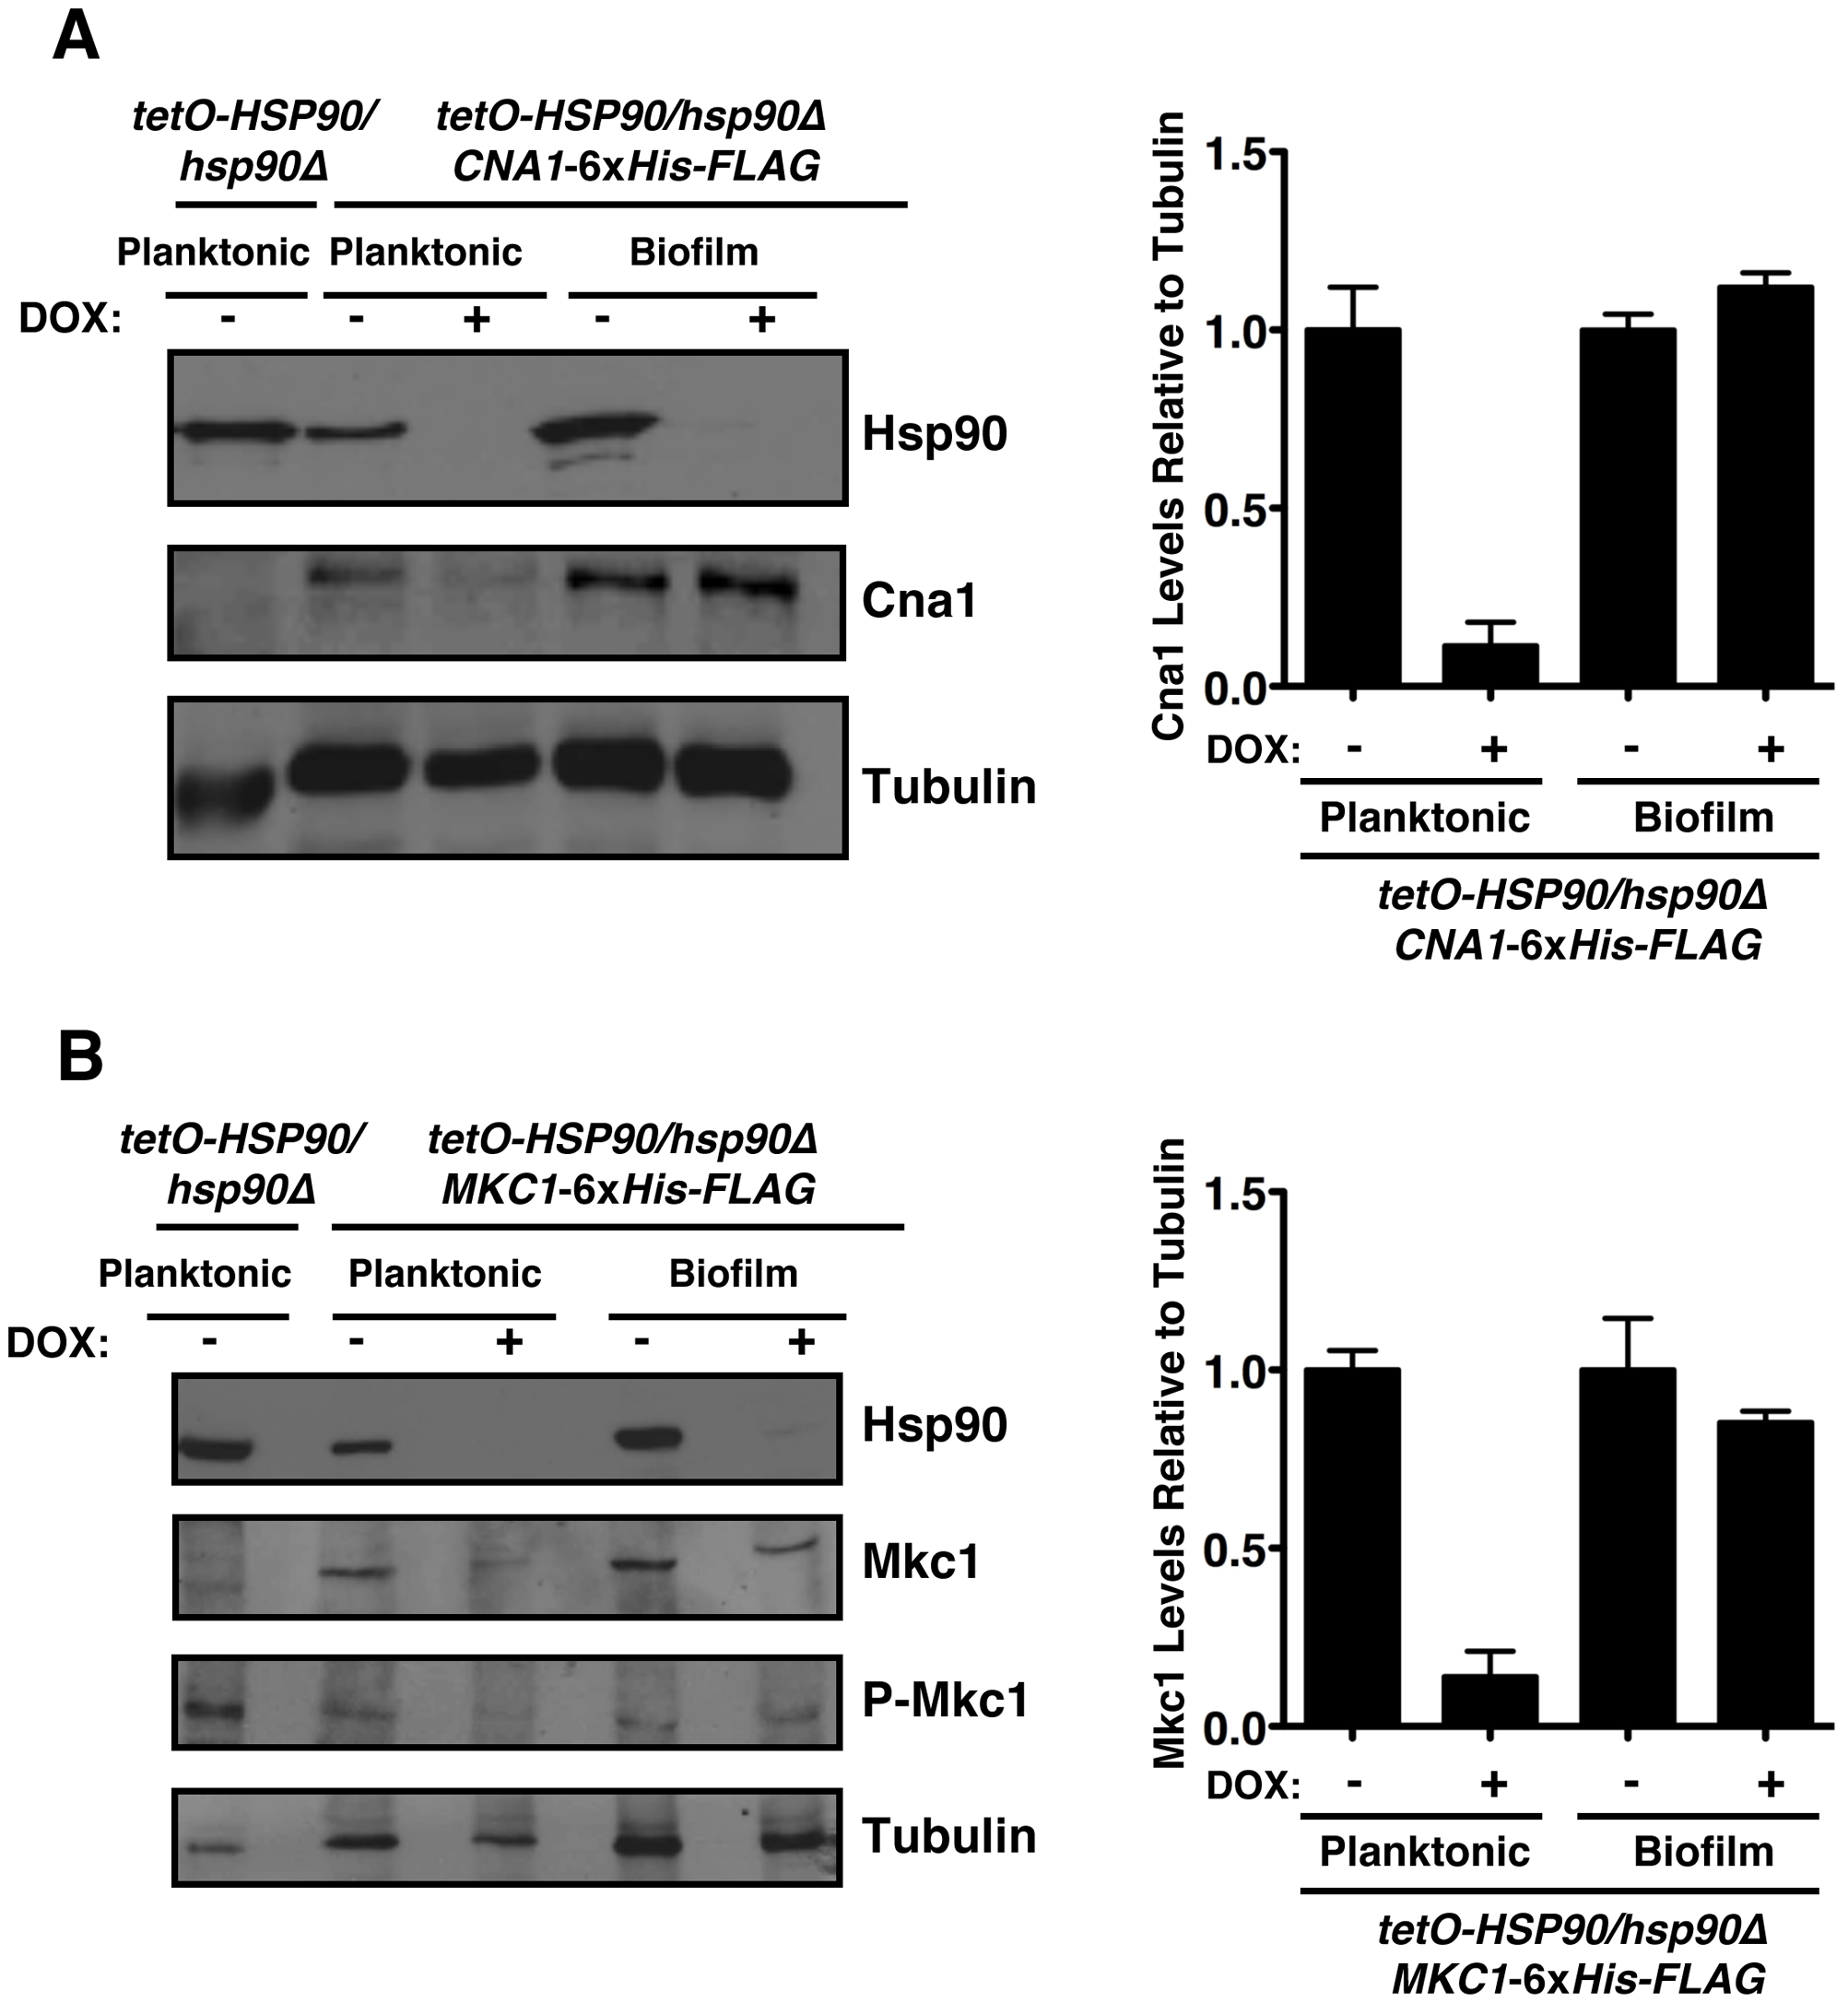 The Hsp90 client proteins Cna1 and Mkc1 exhibit reduced dependence on Hsp90 for stability under biofilm compared to planktonic conditions.